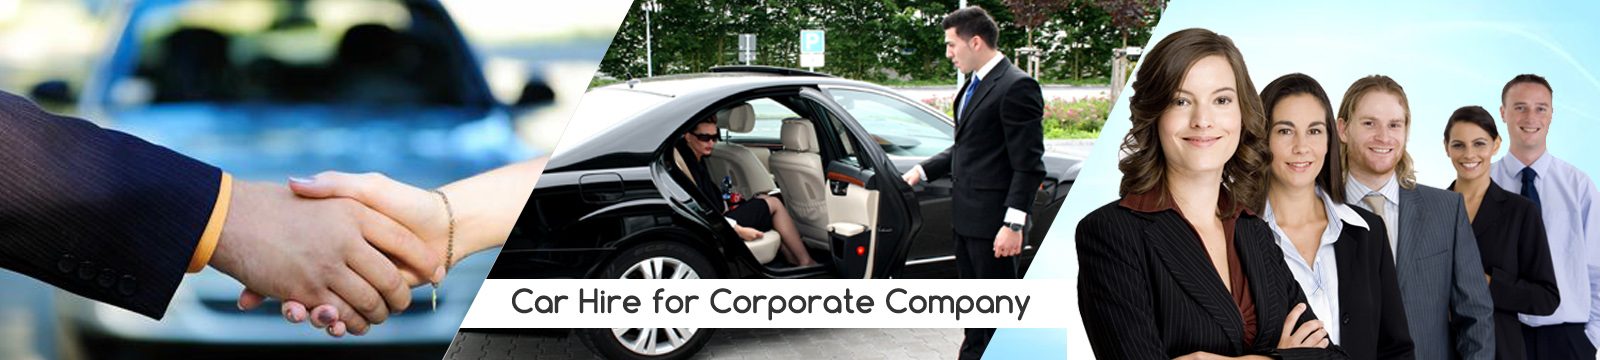 Car Hire in Coimbatore